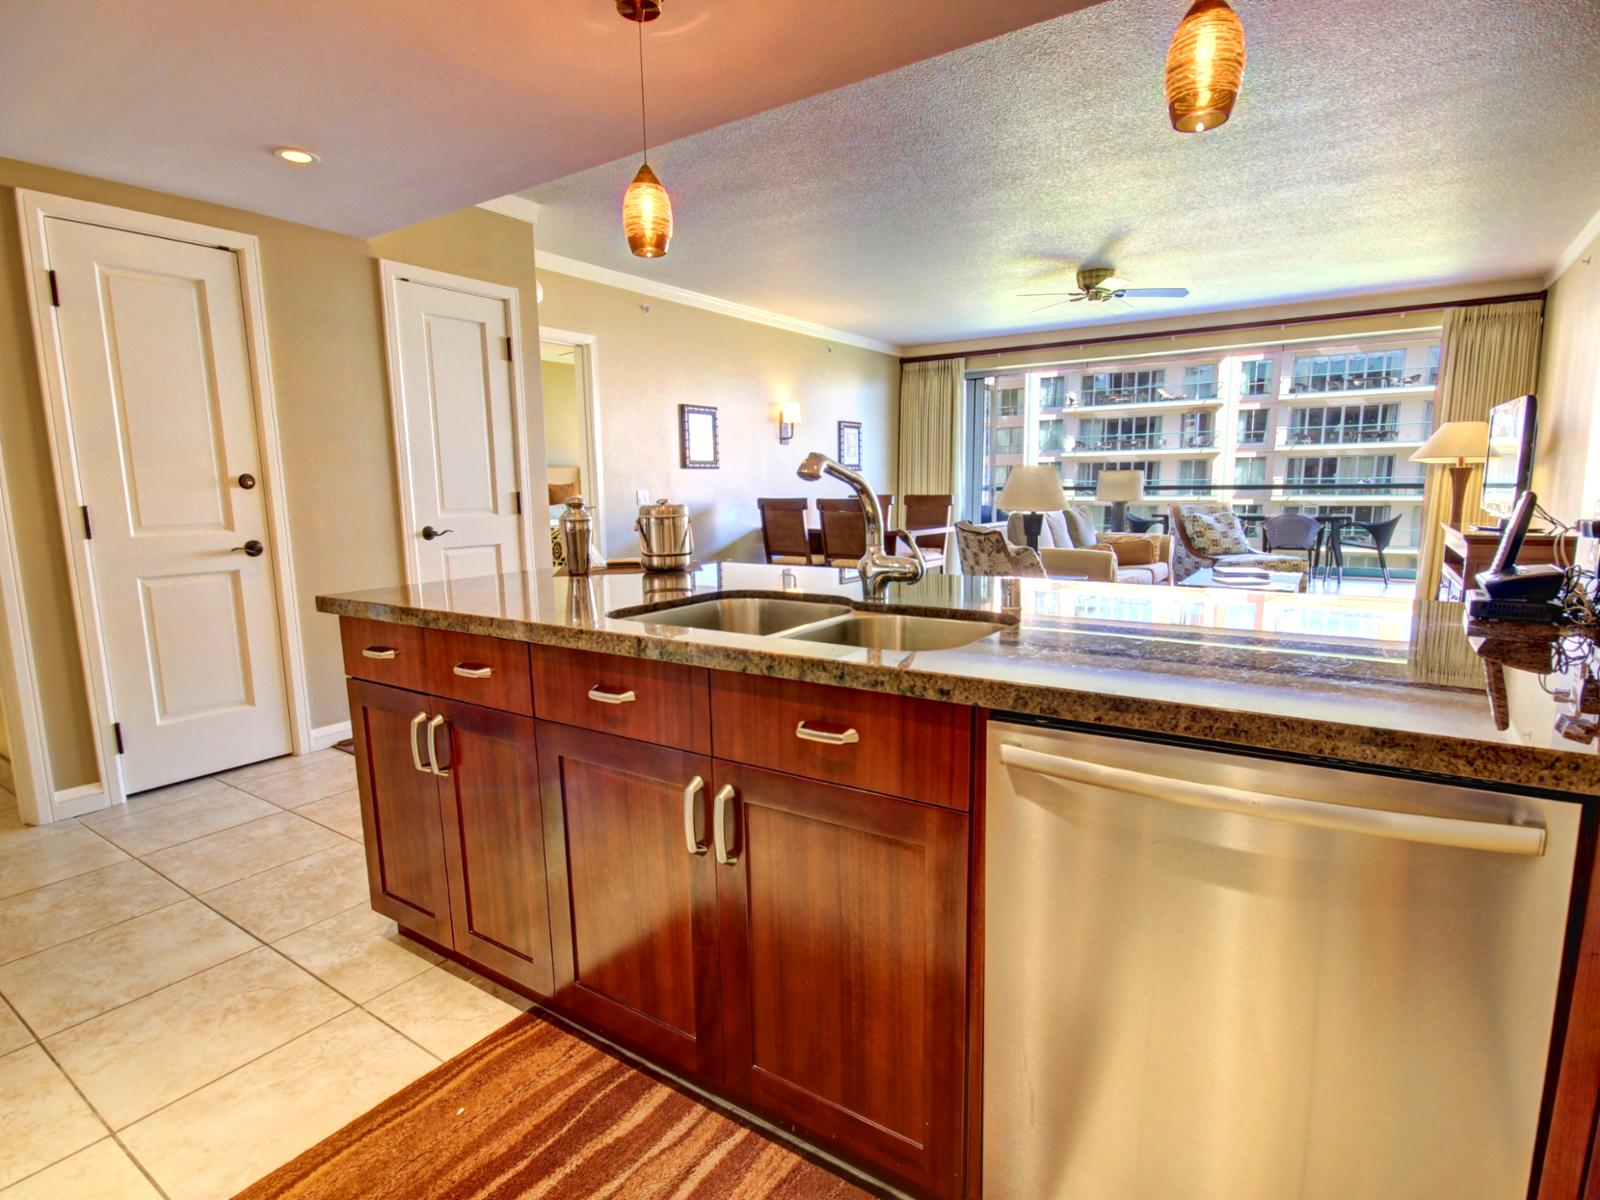 Looking out from this gourmet kitchen into the expansive living room that opens up to a spacious lanai.